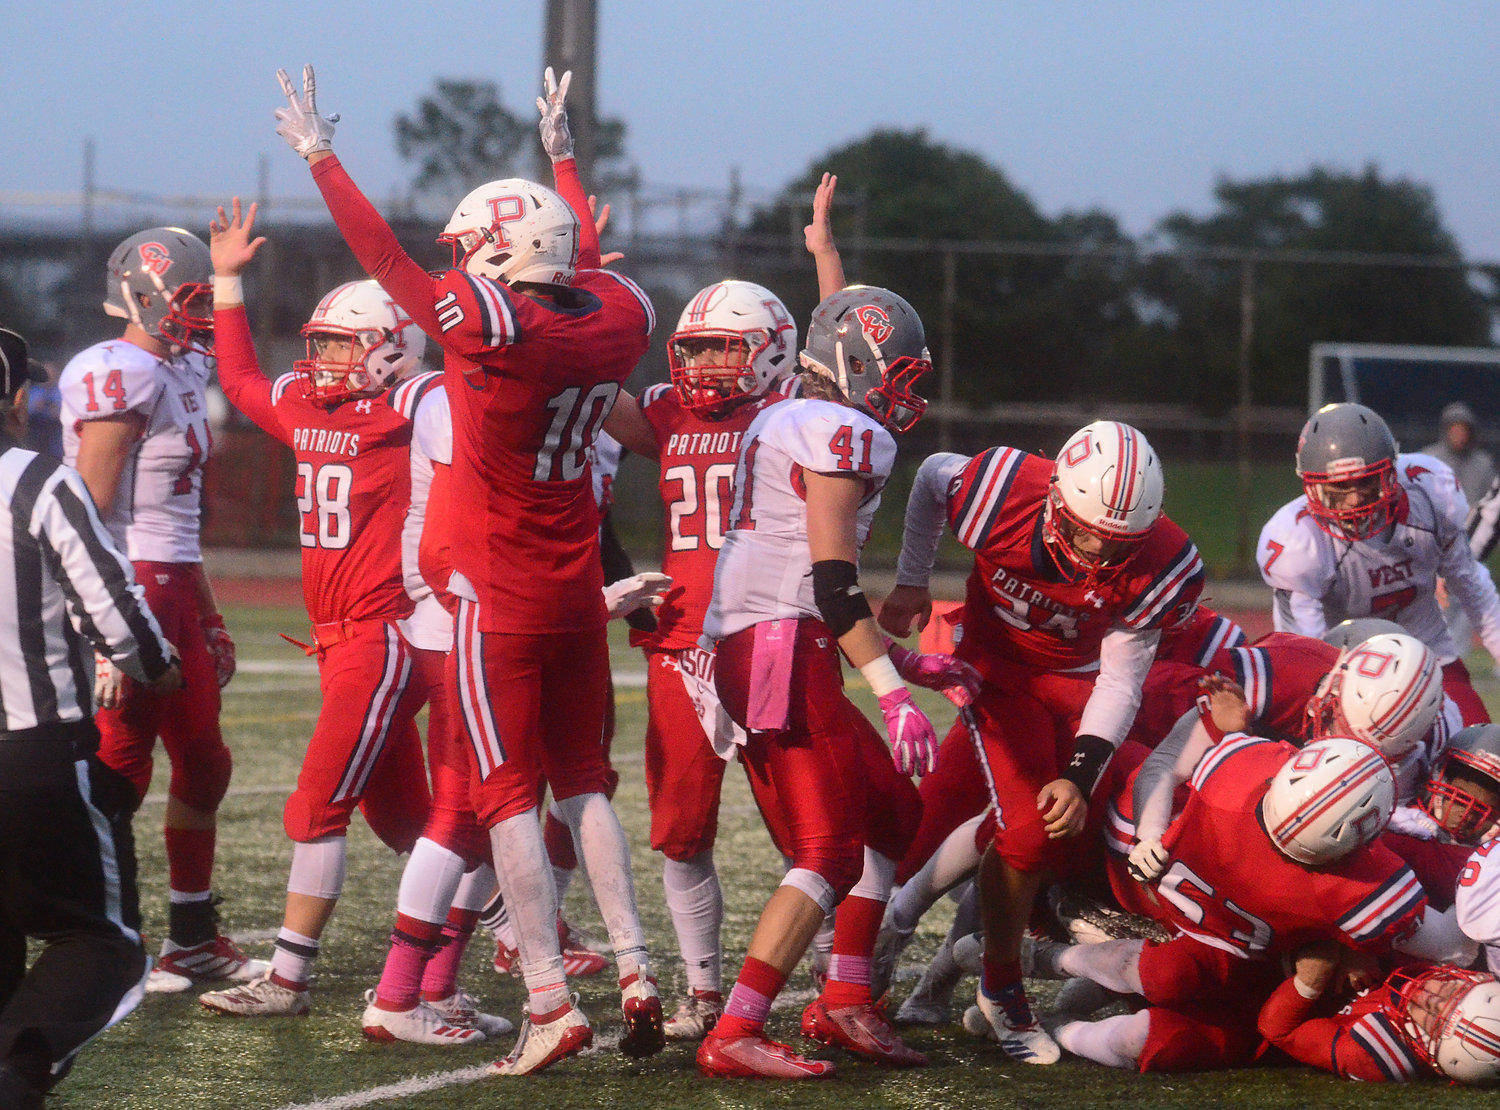 The team celebrates after Hurd scored from the 1-yard line.